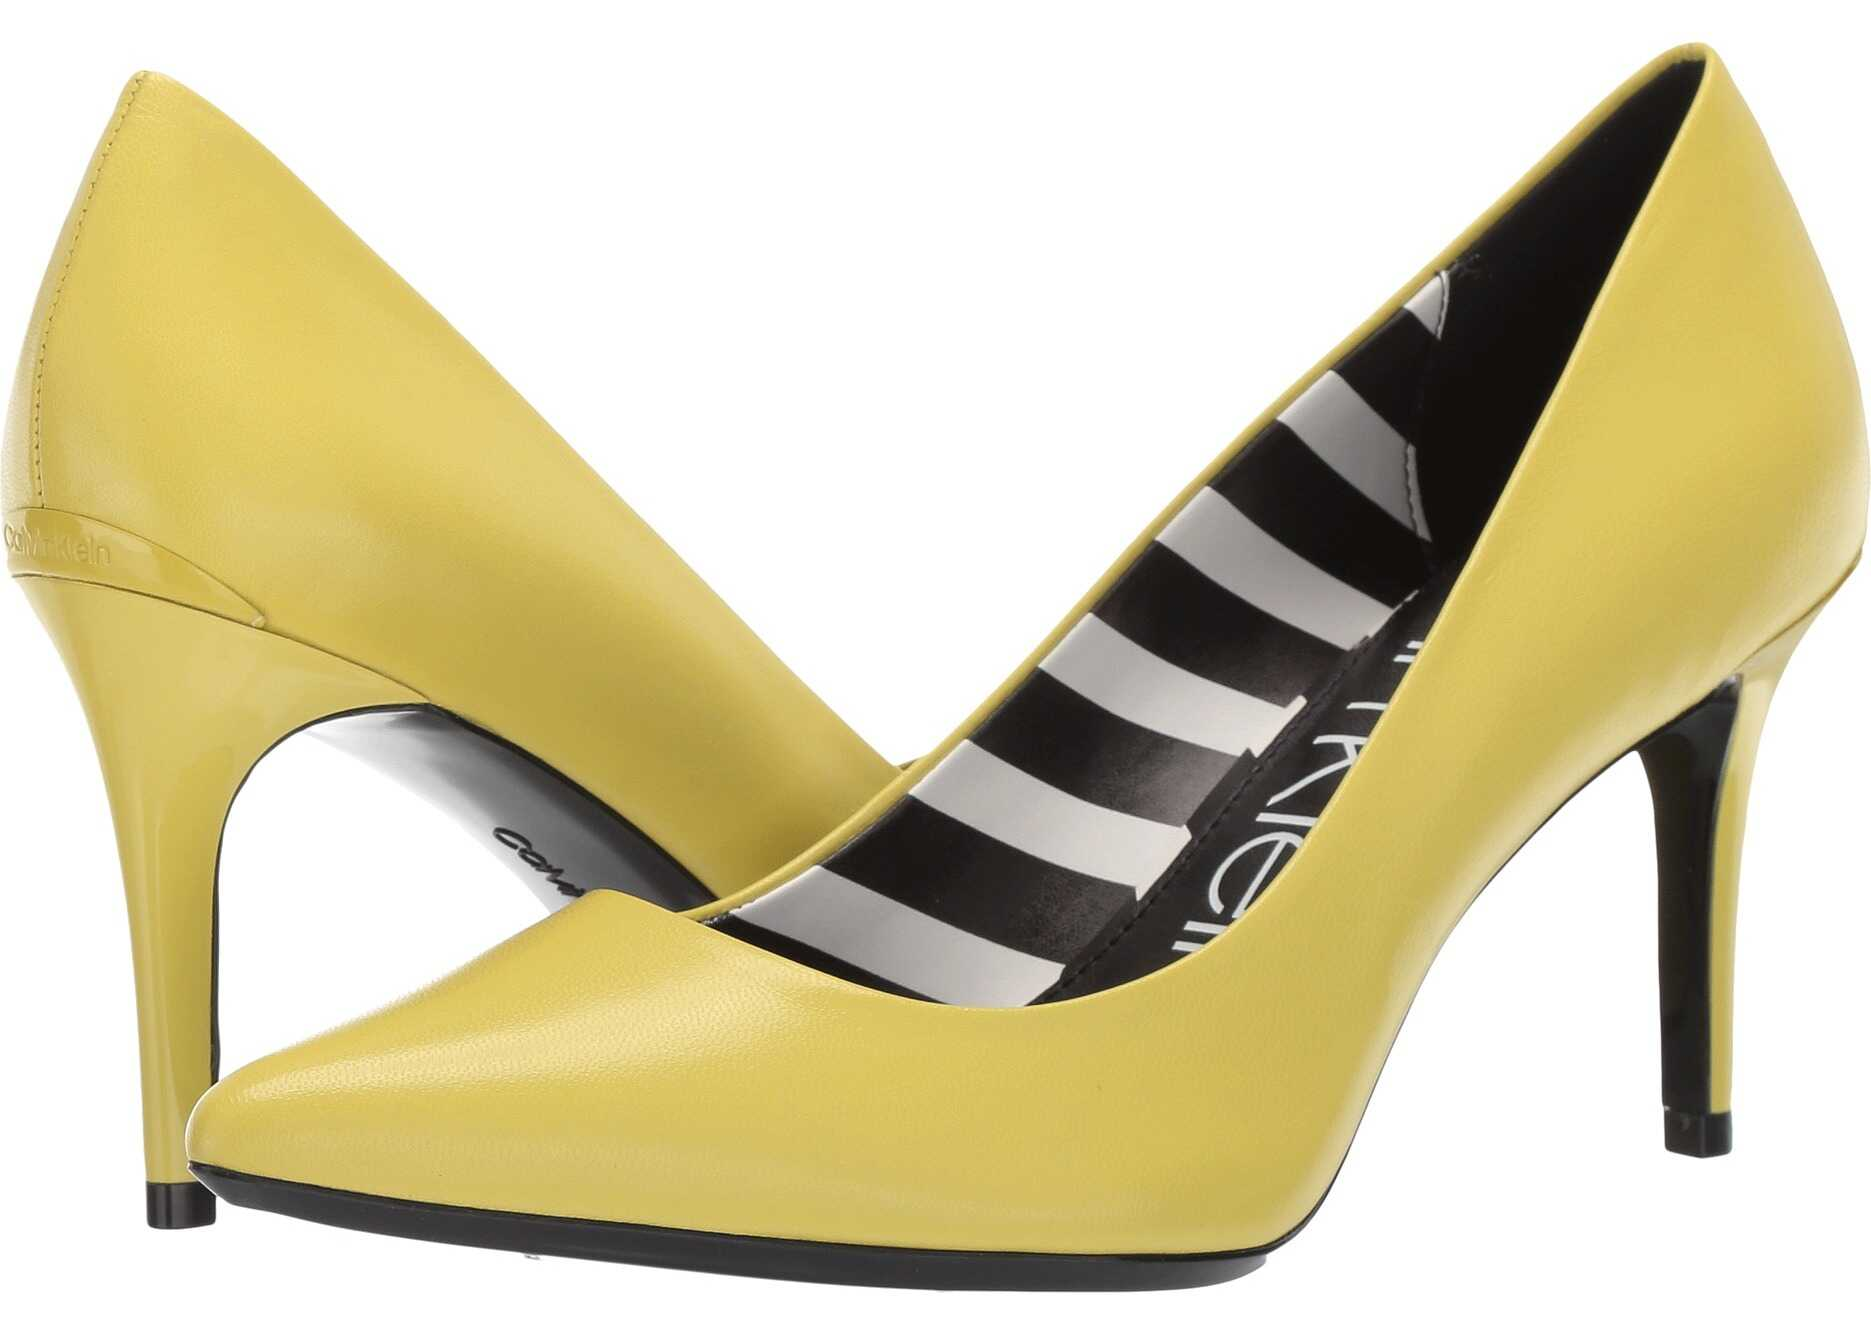 Calvin Klein Gayle Pump Lime Leather Stripes